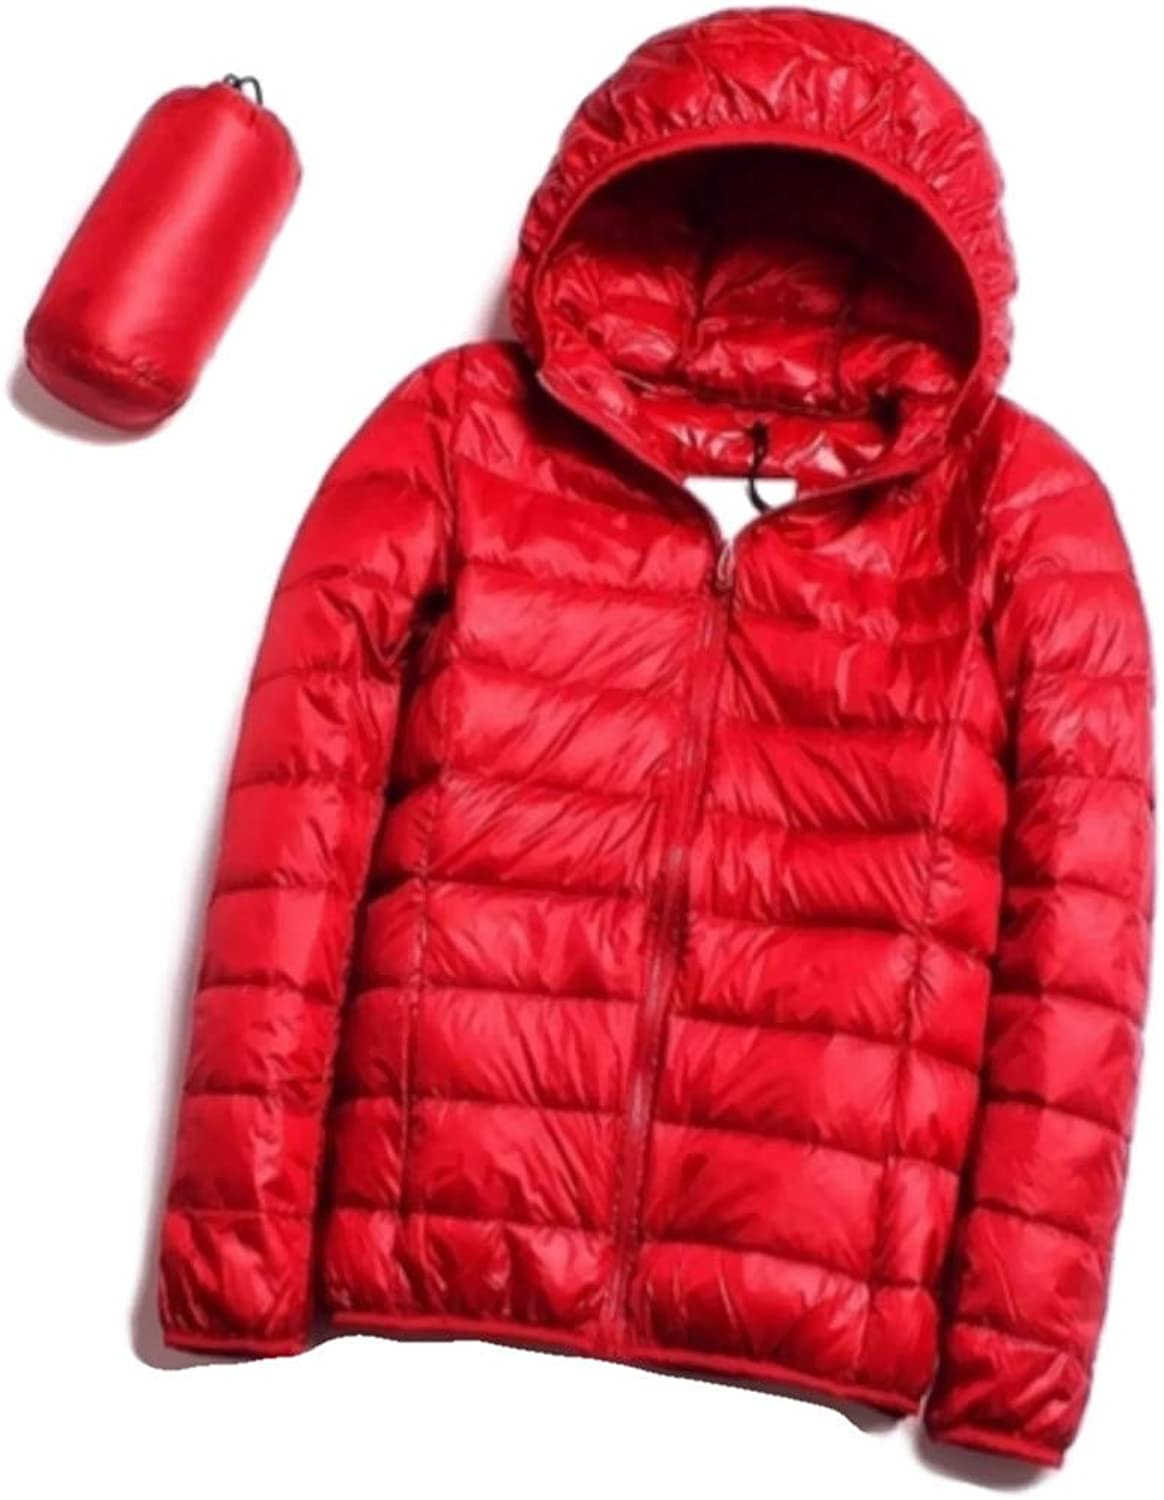 Quality Casual Ultra Light Max 70% OFF White Duck Down Raleigh Mall W Jacket Women Autumn